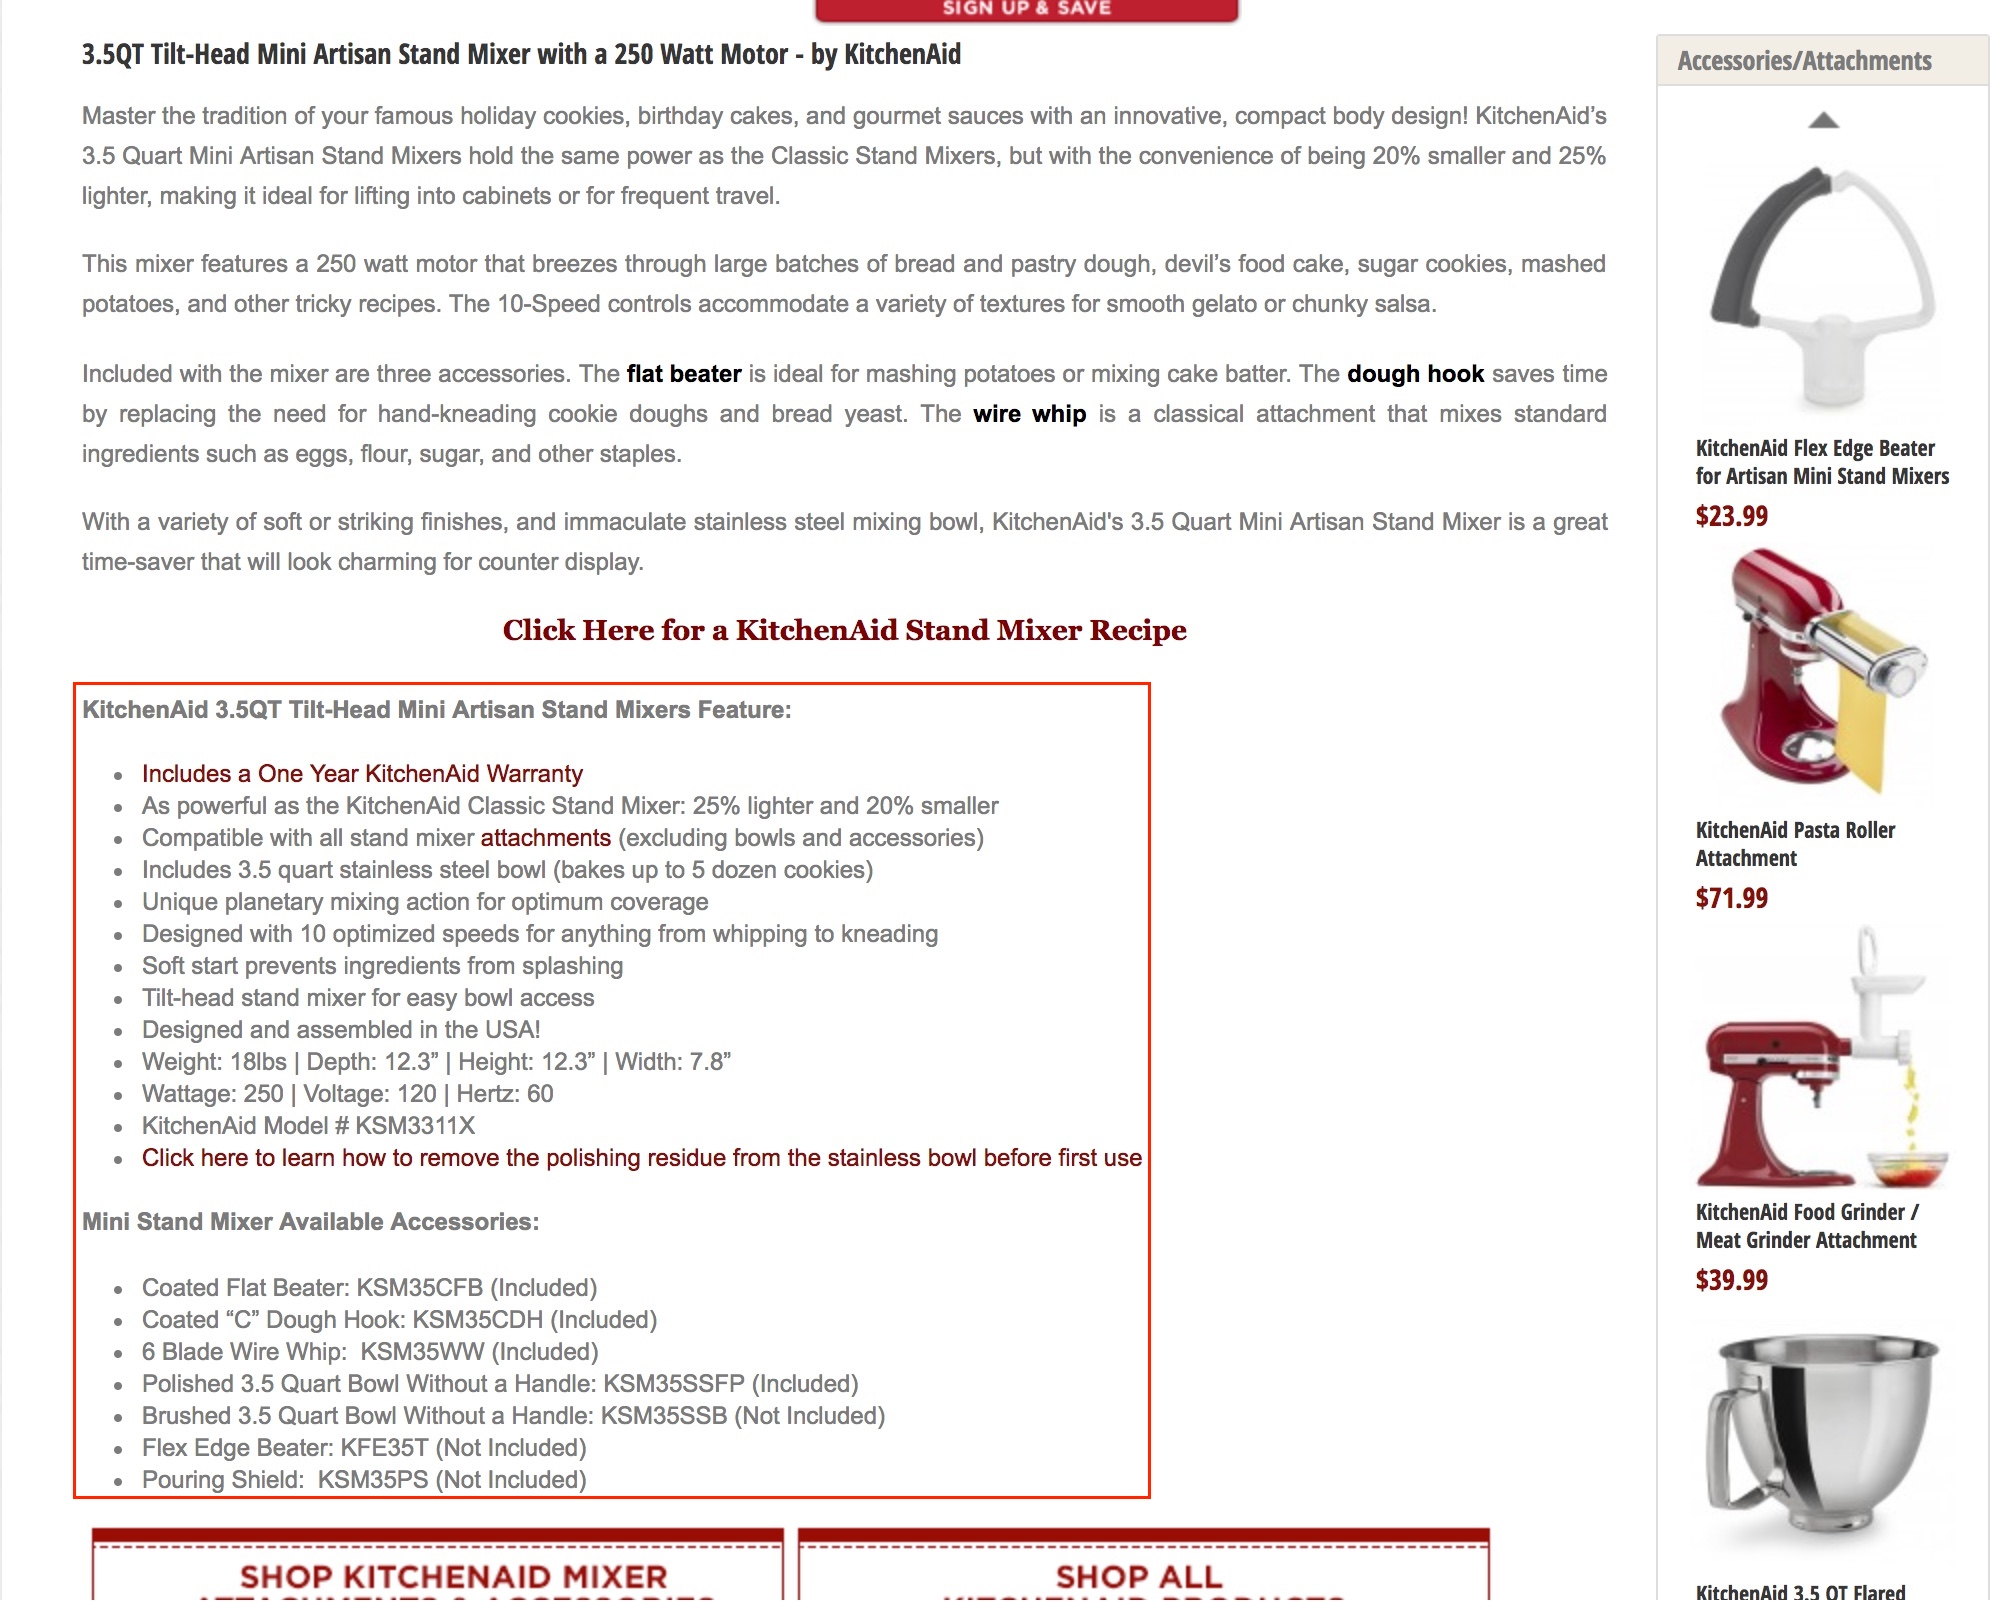 Screenshot showing an ecommerce product description